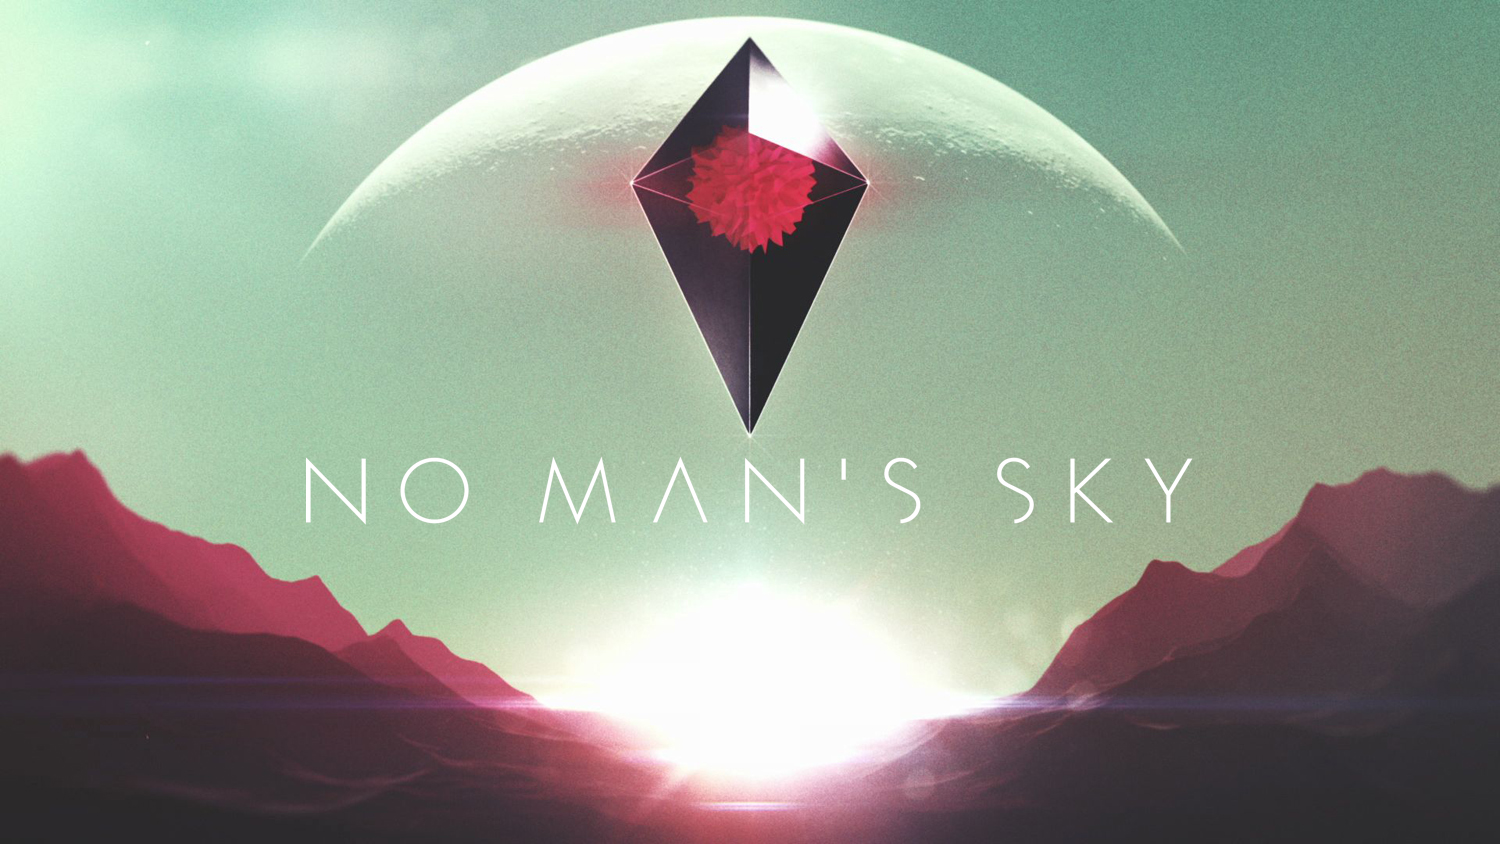 no-mans-sky-hero-image